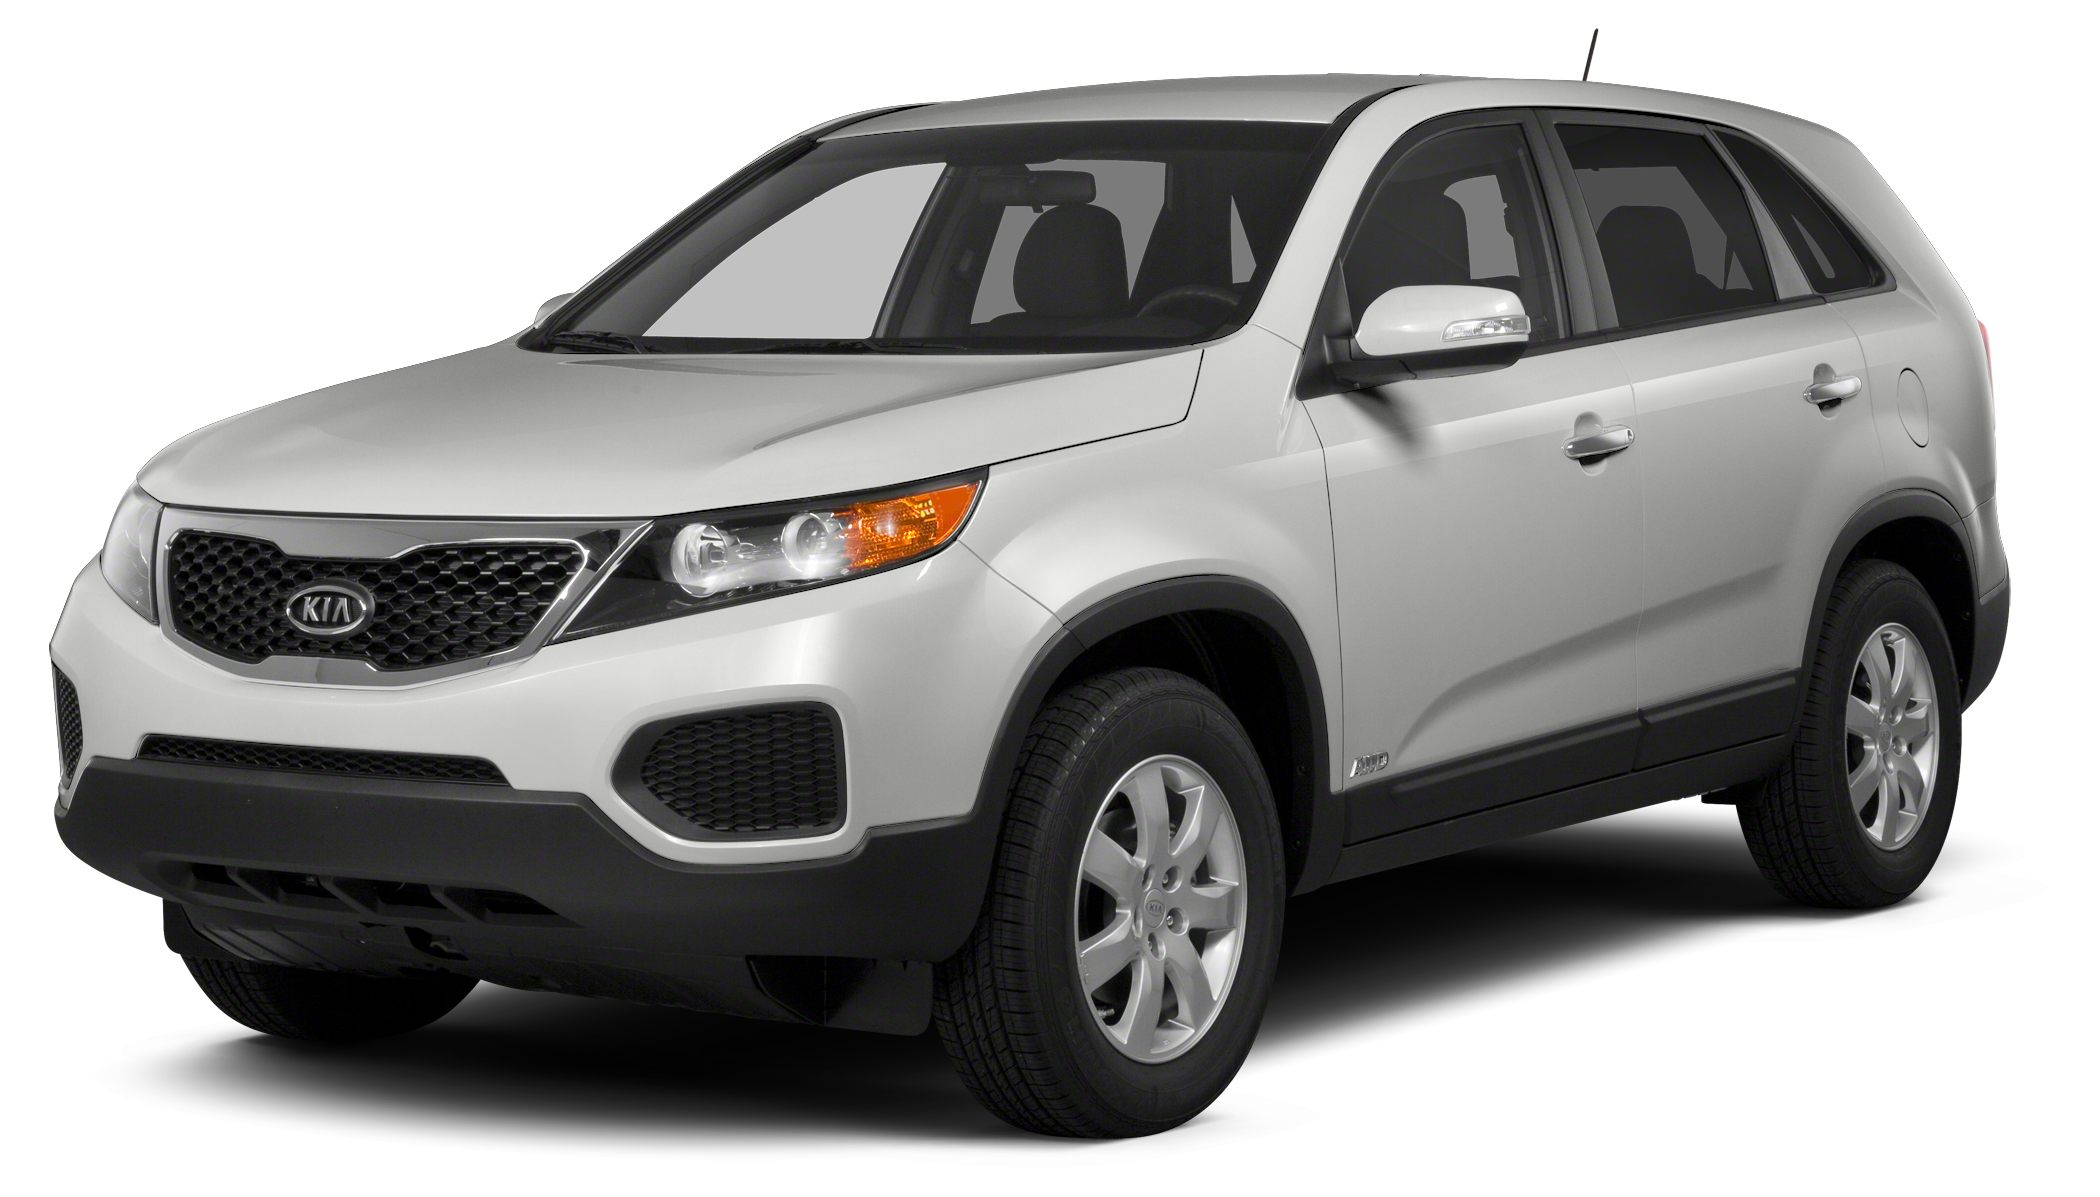 2011 Kia Sorento  ITS OUR 50TH ANNIVERSARY HERE AT MARTYS AND TO CELEBRATE WERE OFFERING THE MOST